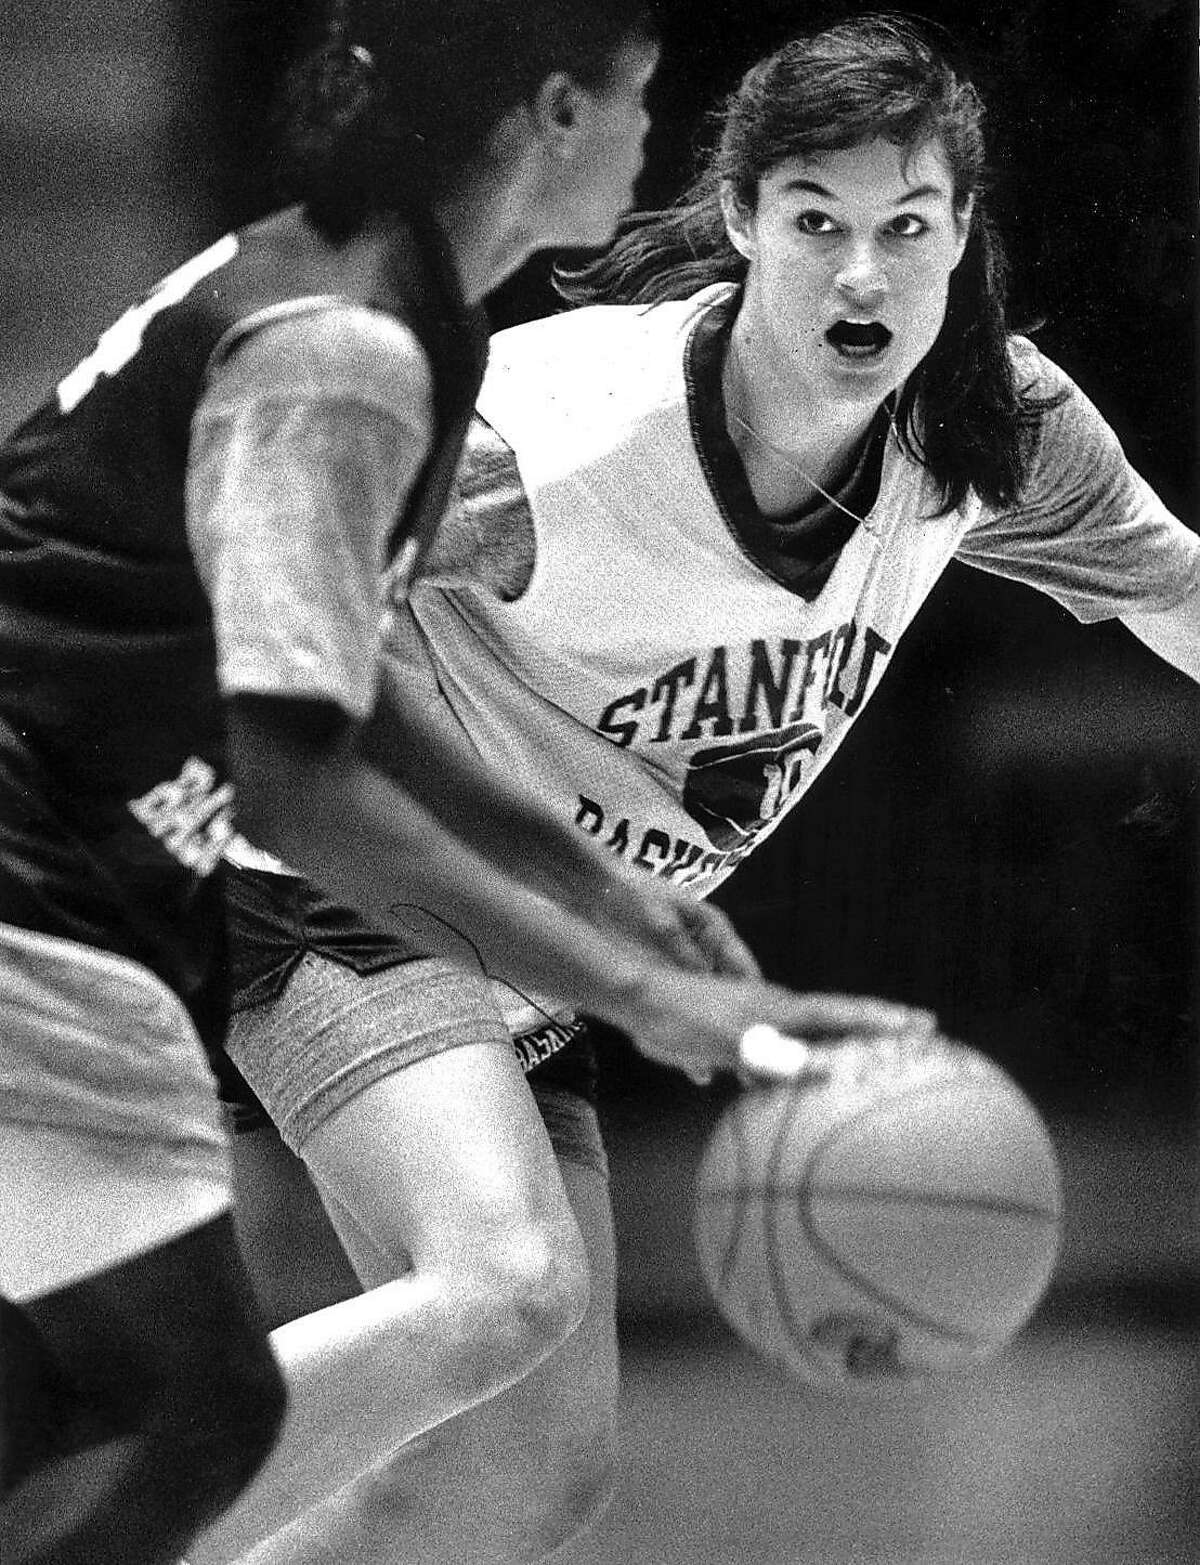 AZZI/B/14FEB90/SP/SCOTT SOMMERDORF THE CHRONICLE. JENNIFER AZZI GUARDS A TEAMMATE DURING STANFORD BASKETBALL PRACTICE AT MAPLES PAVILLION IN PALO ALTO